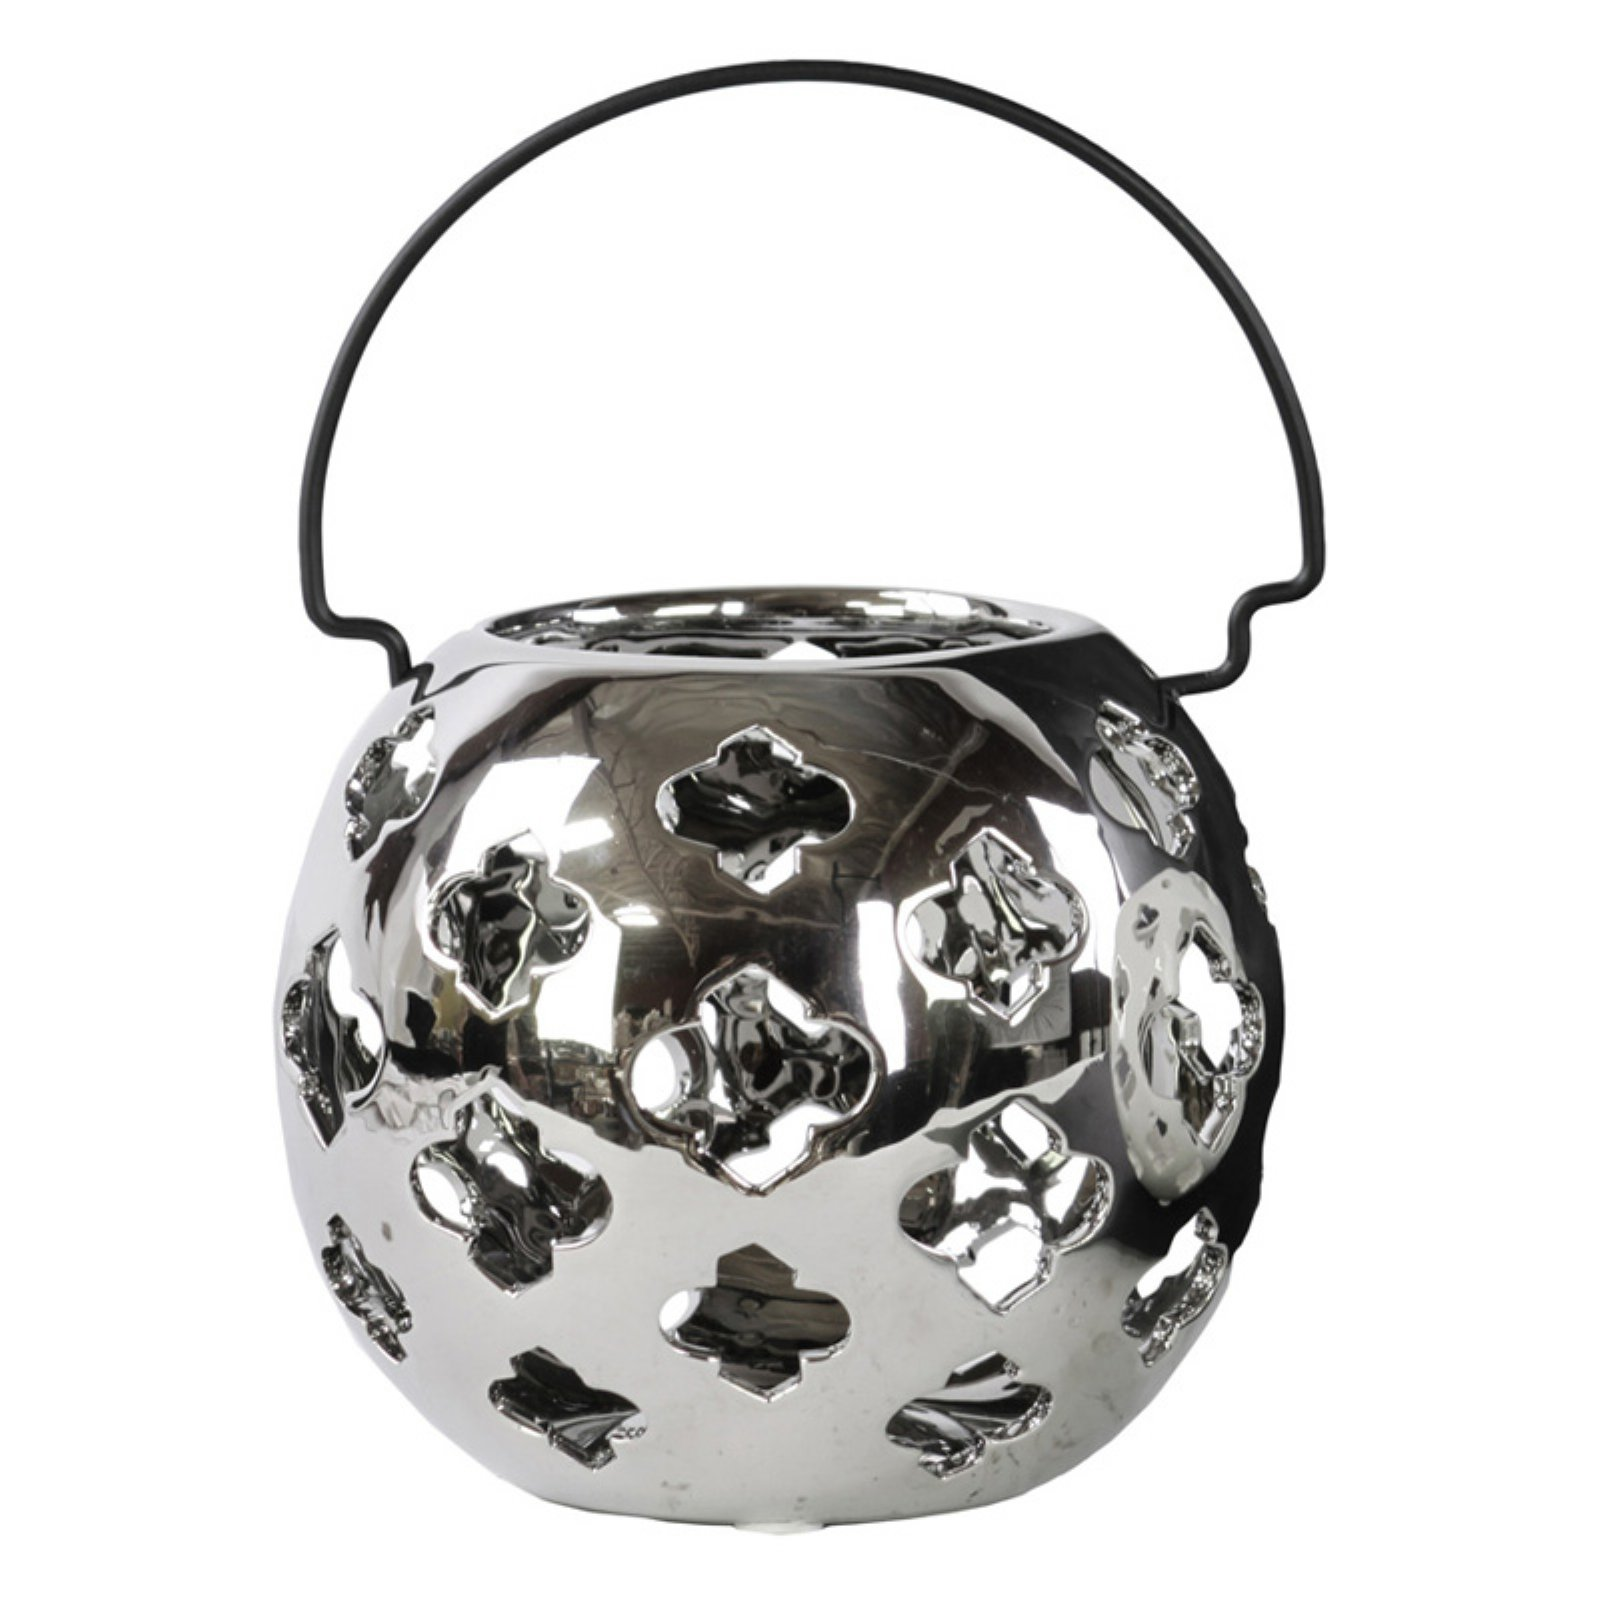 Urban Trends Collection: Porcelain Hand Lantern, Gloss Finish, White